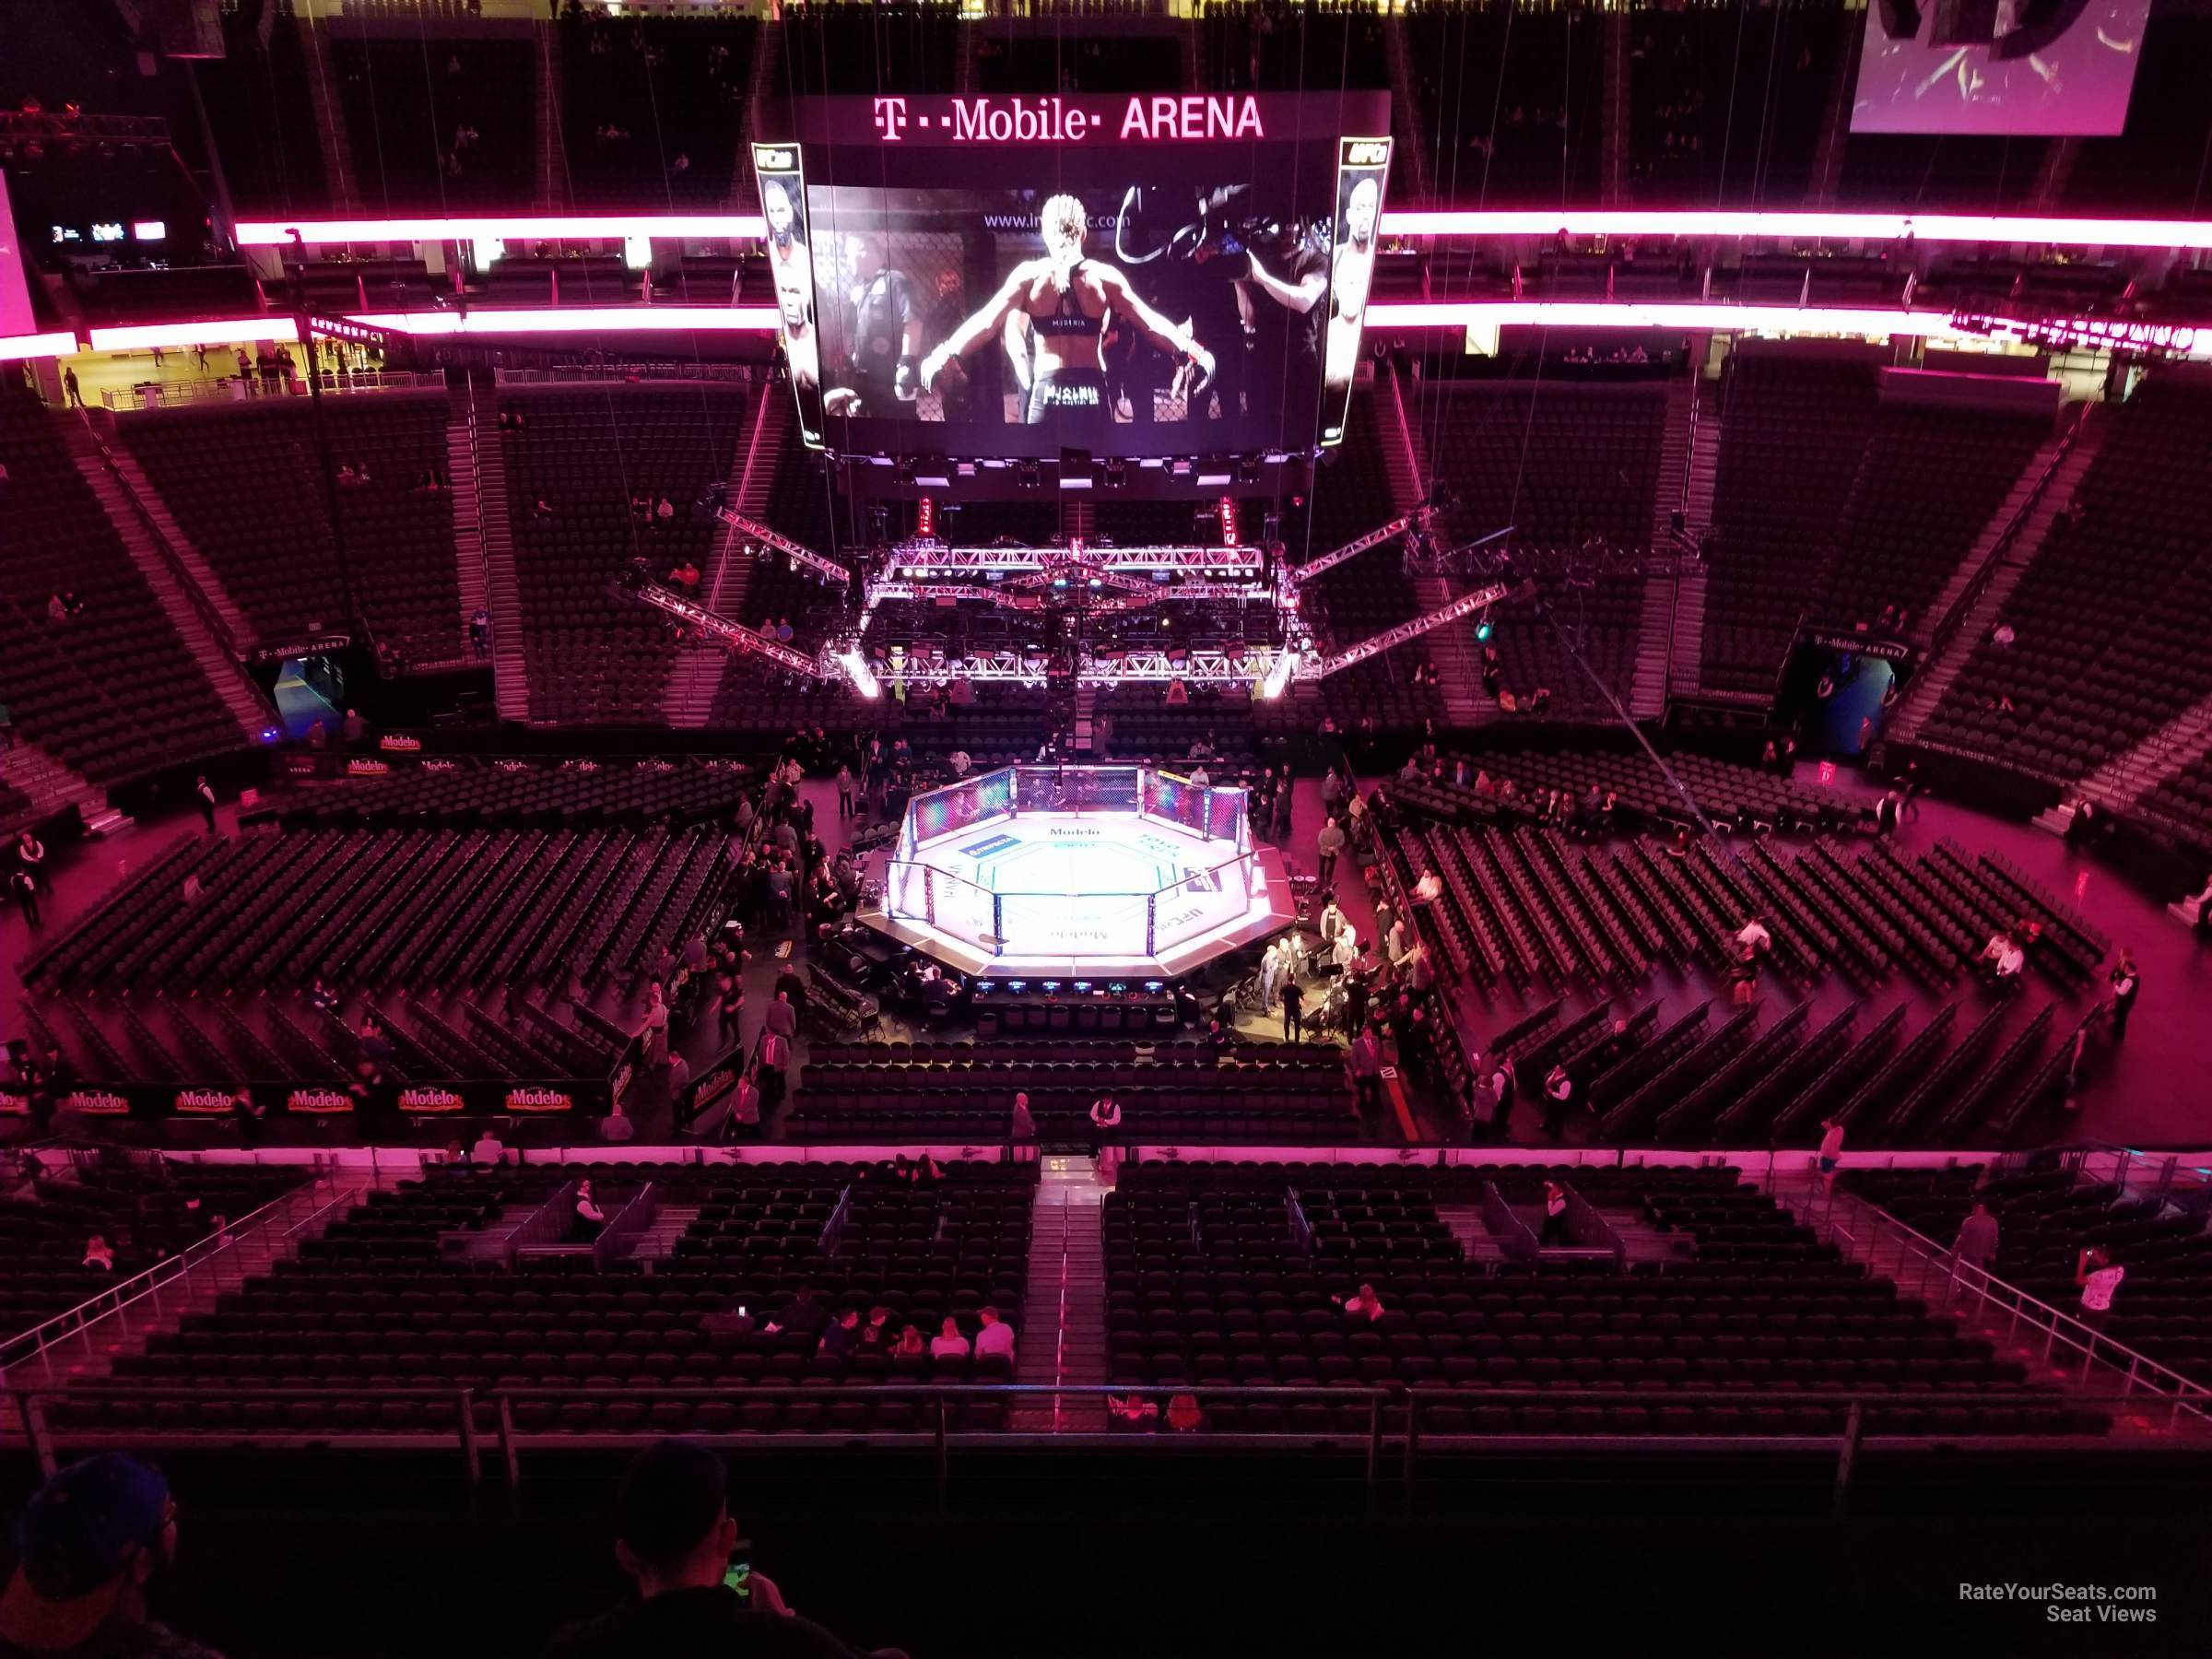 Section 205 At T Mobile Arena For Fighting Rateyourseats Com